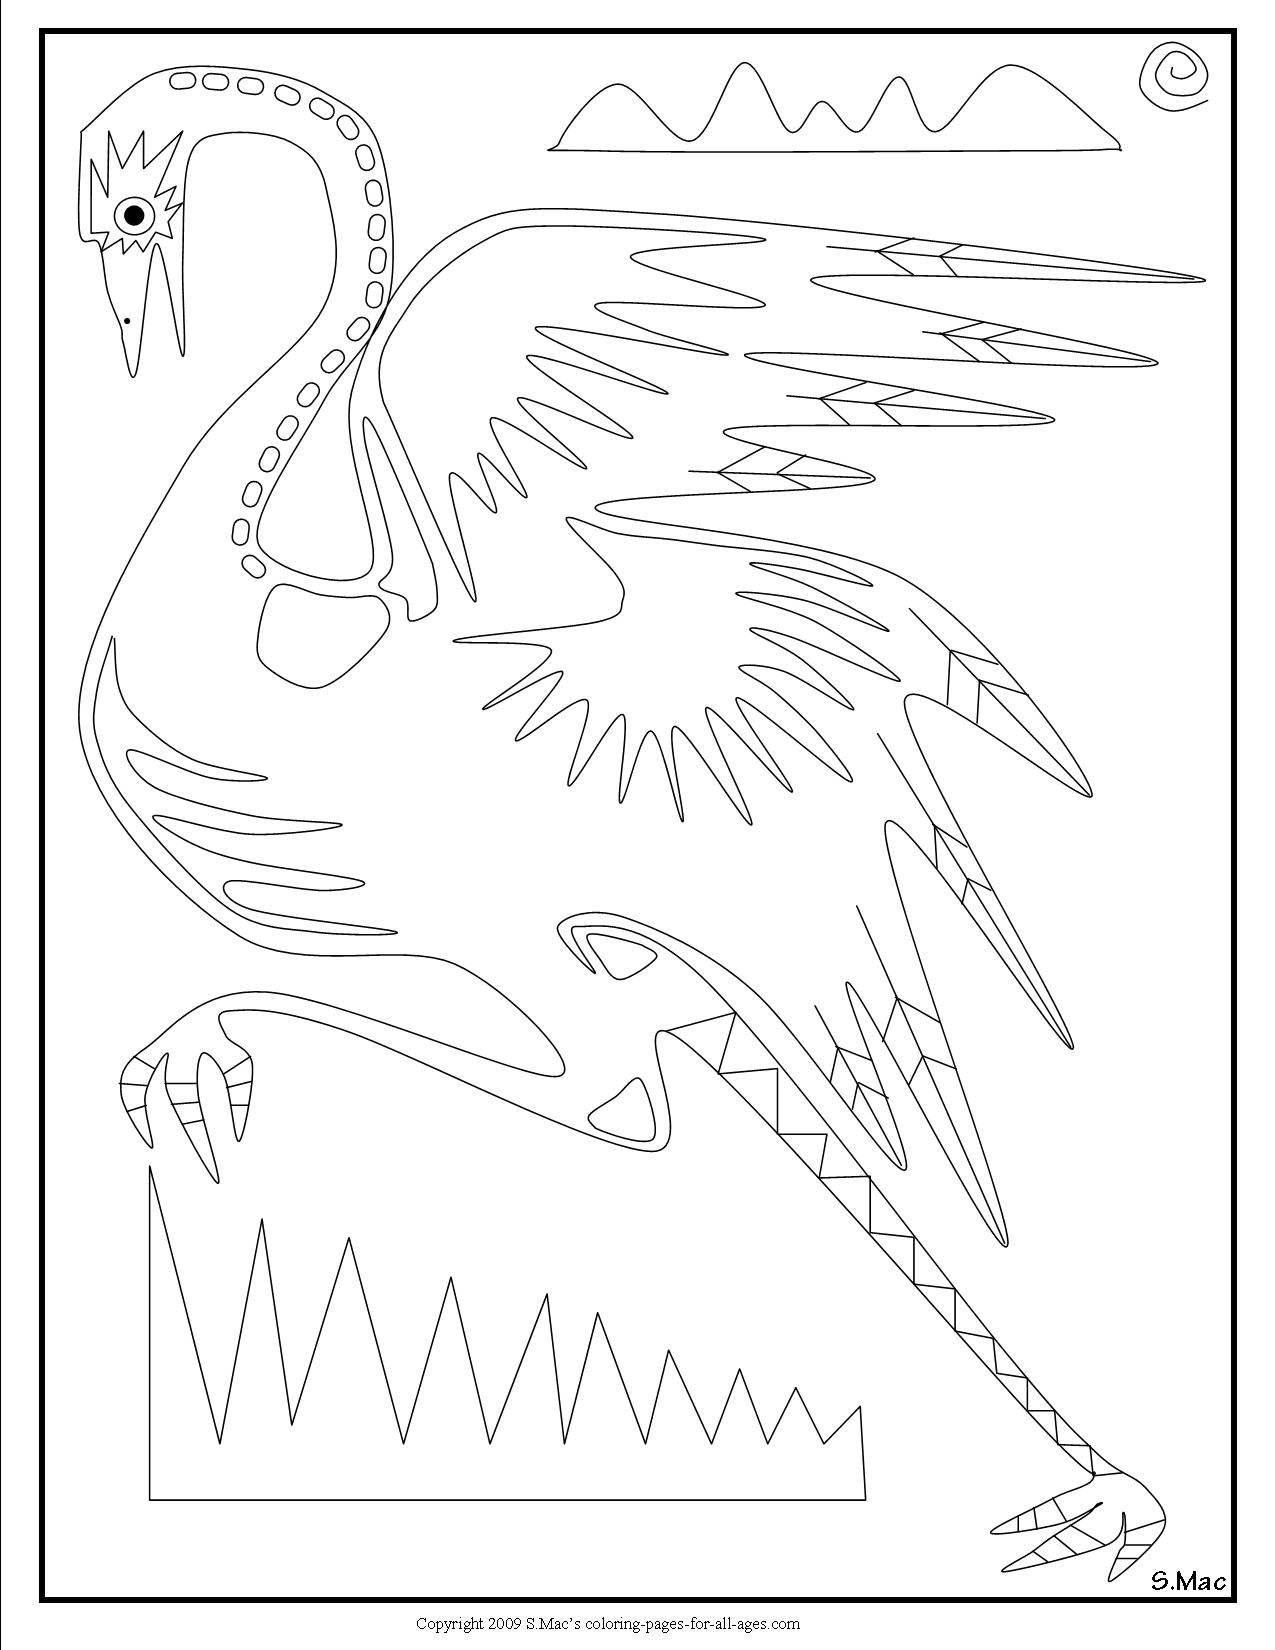 X ray coloring sheets -  X Ray Art Coloring Pages Download